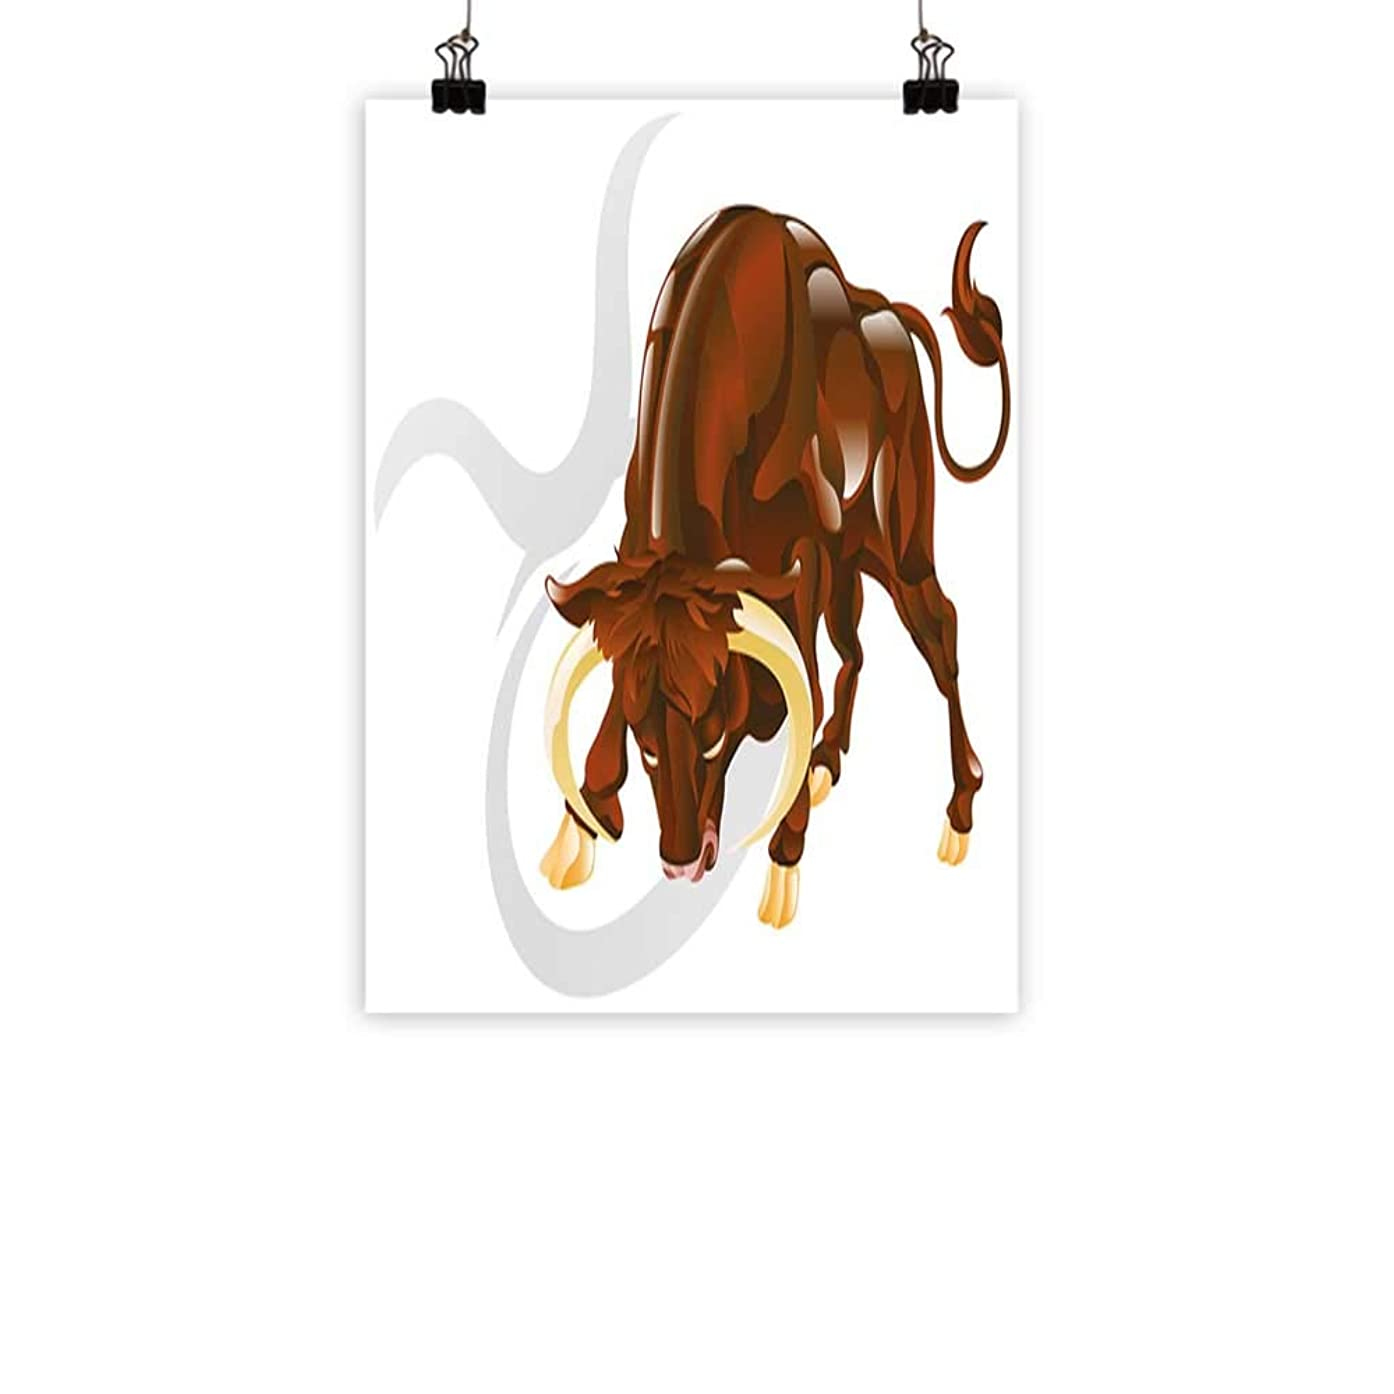 BarronTextile Taurus Modern Oil Paintings Angry Bull Birth Sign Astrology Animal Icon Cultural Western Spirituality Graphic Canvas Wall Art Redwood Cream 16